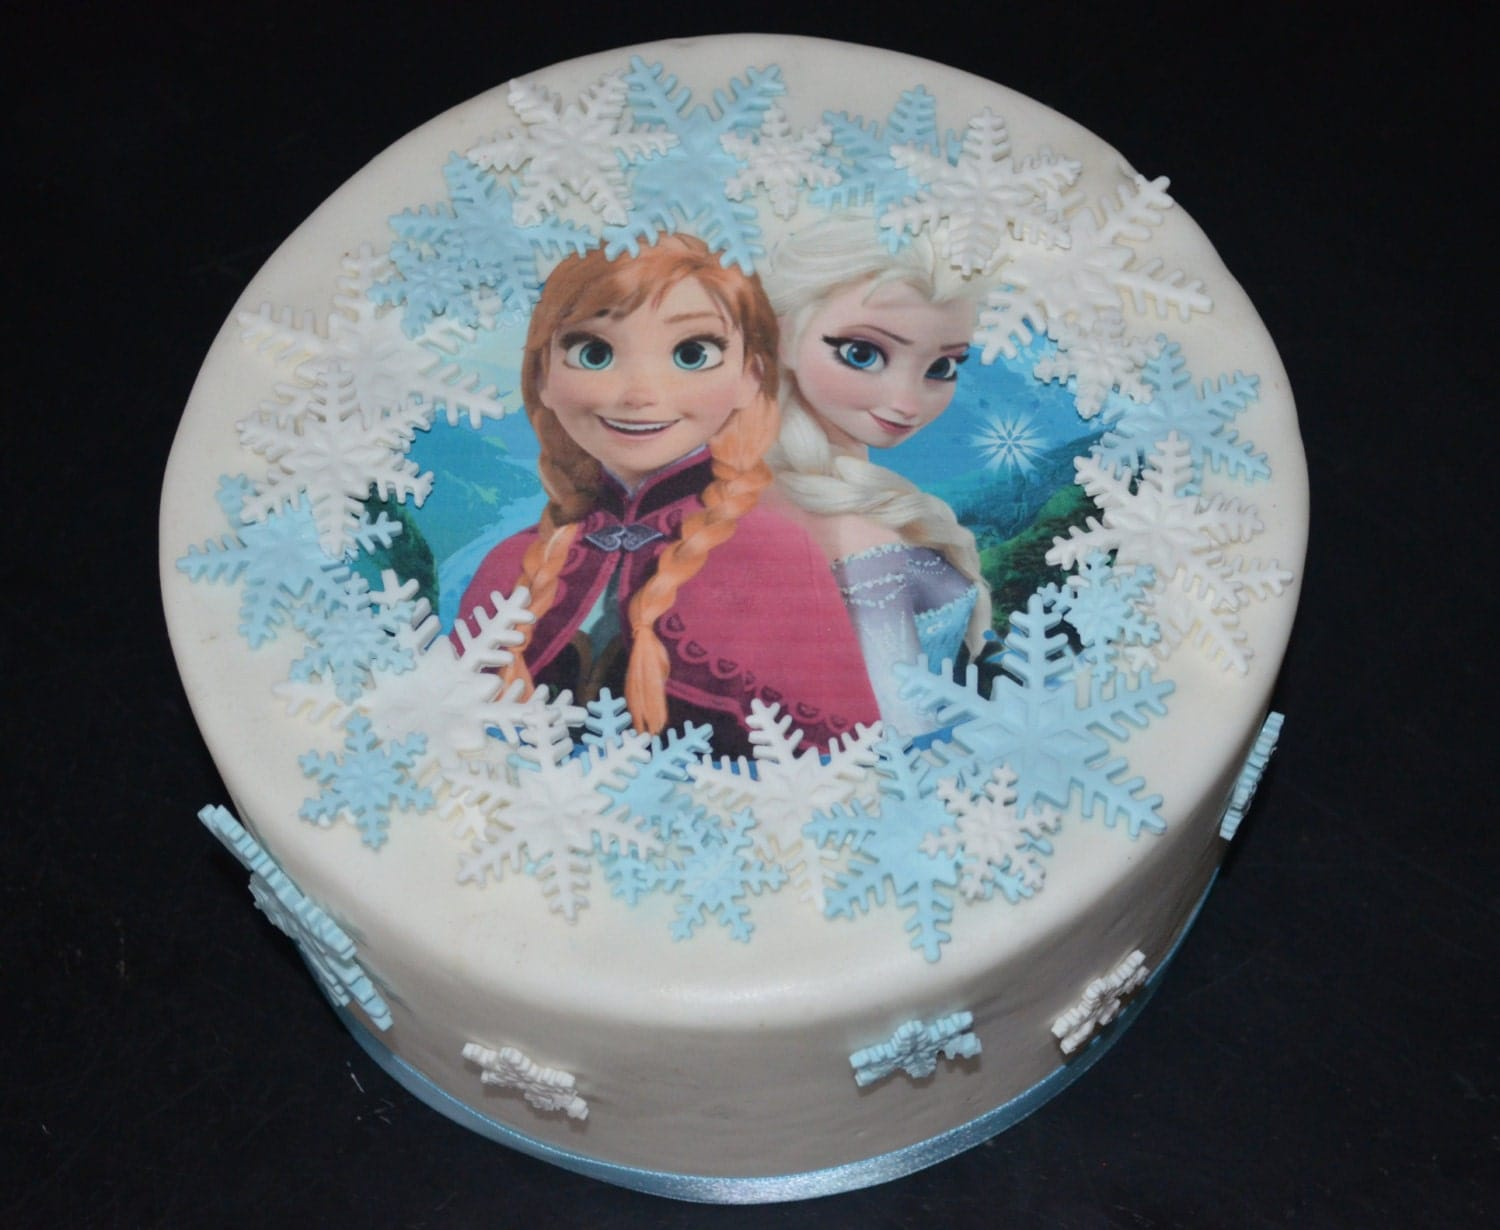 Frozen Cake Decoration Images : Ready to Ship Frozen Cake Decorating Kit